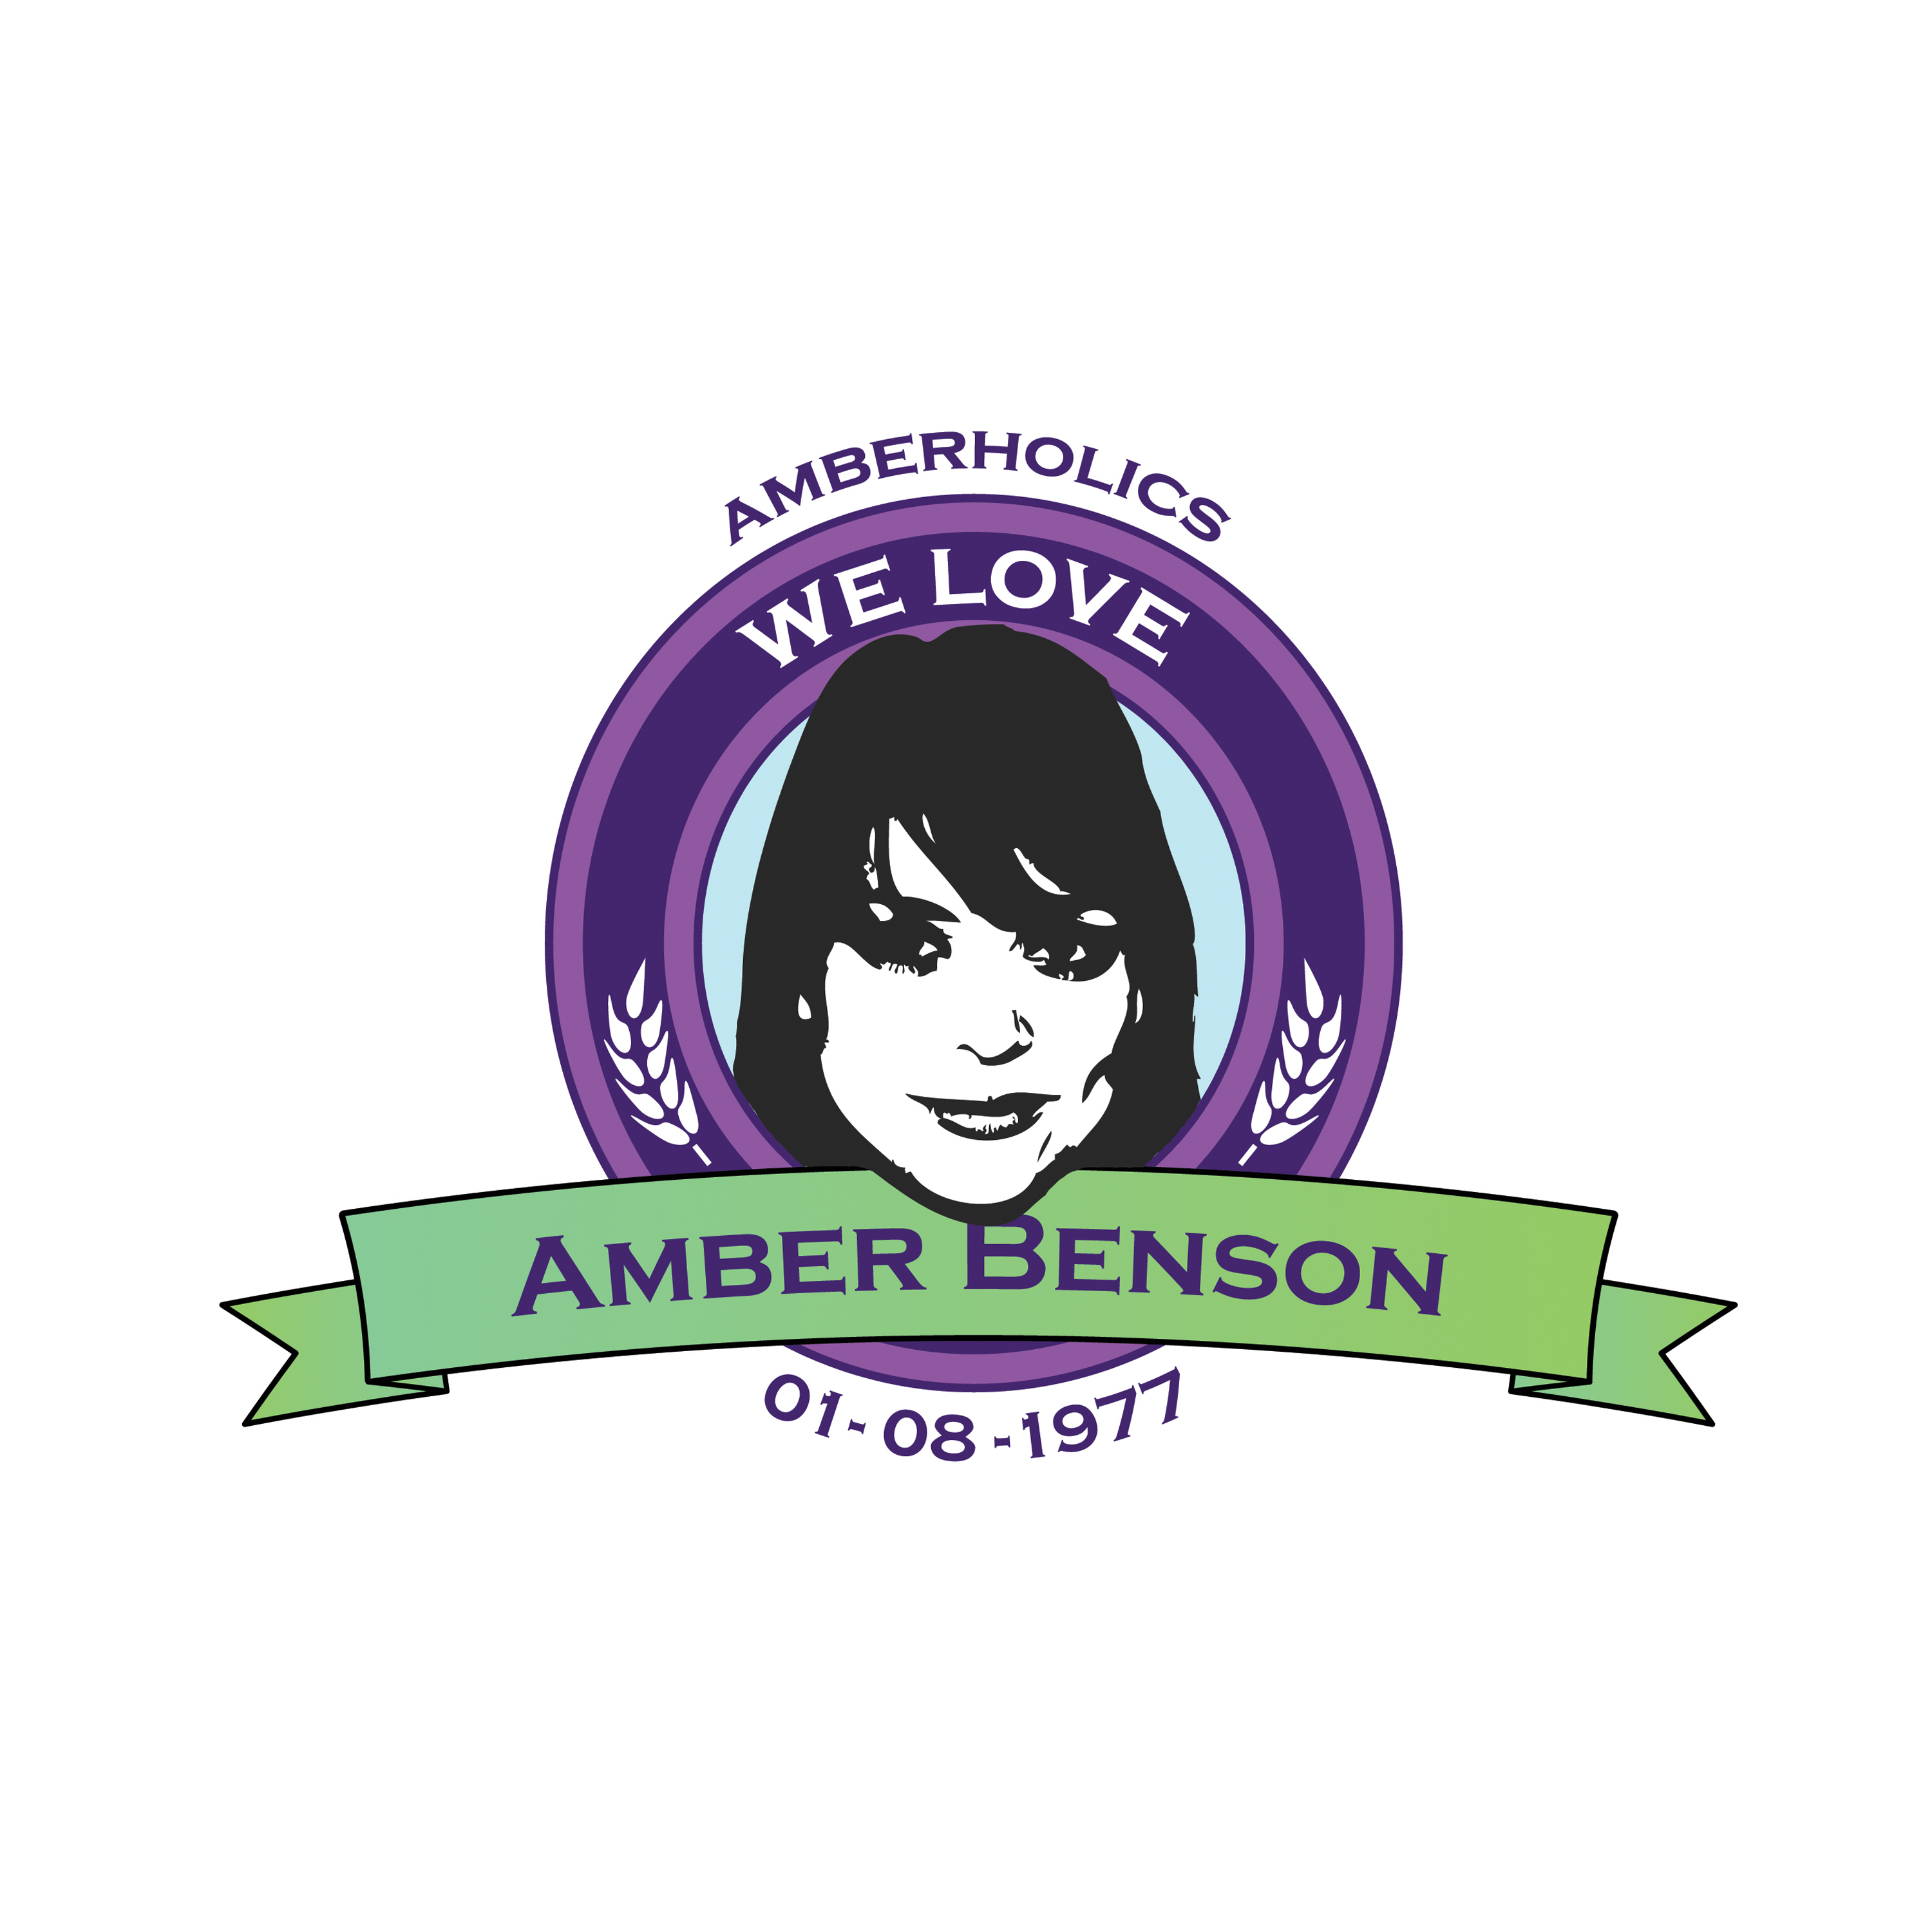 We love Amber Benson